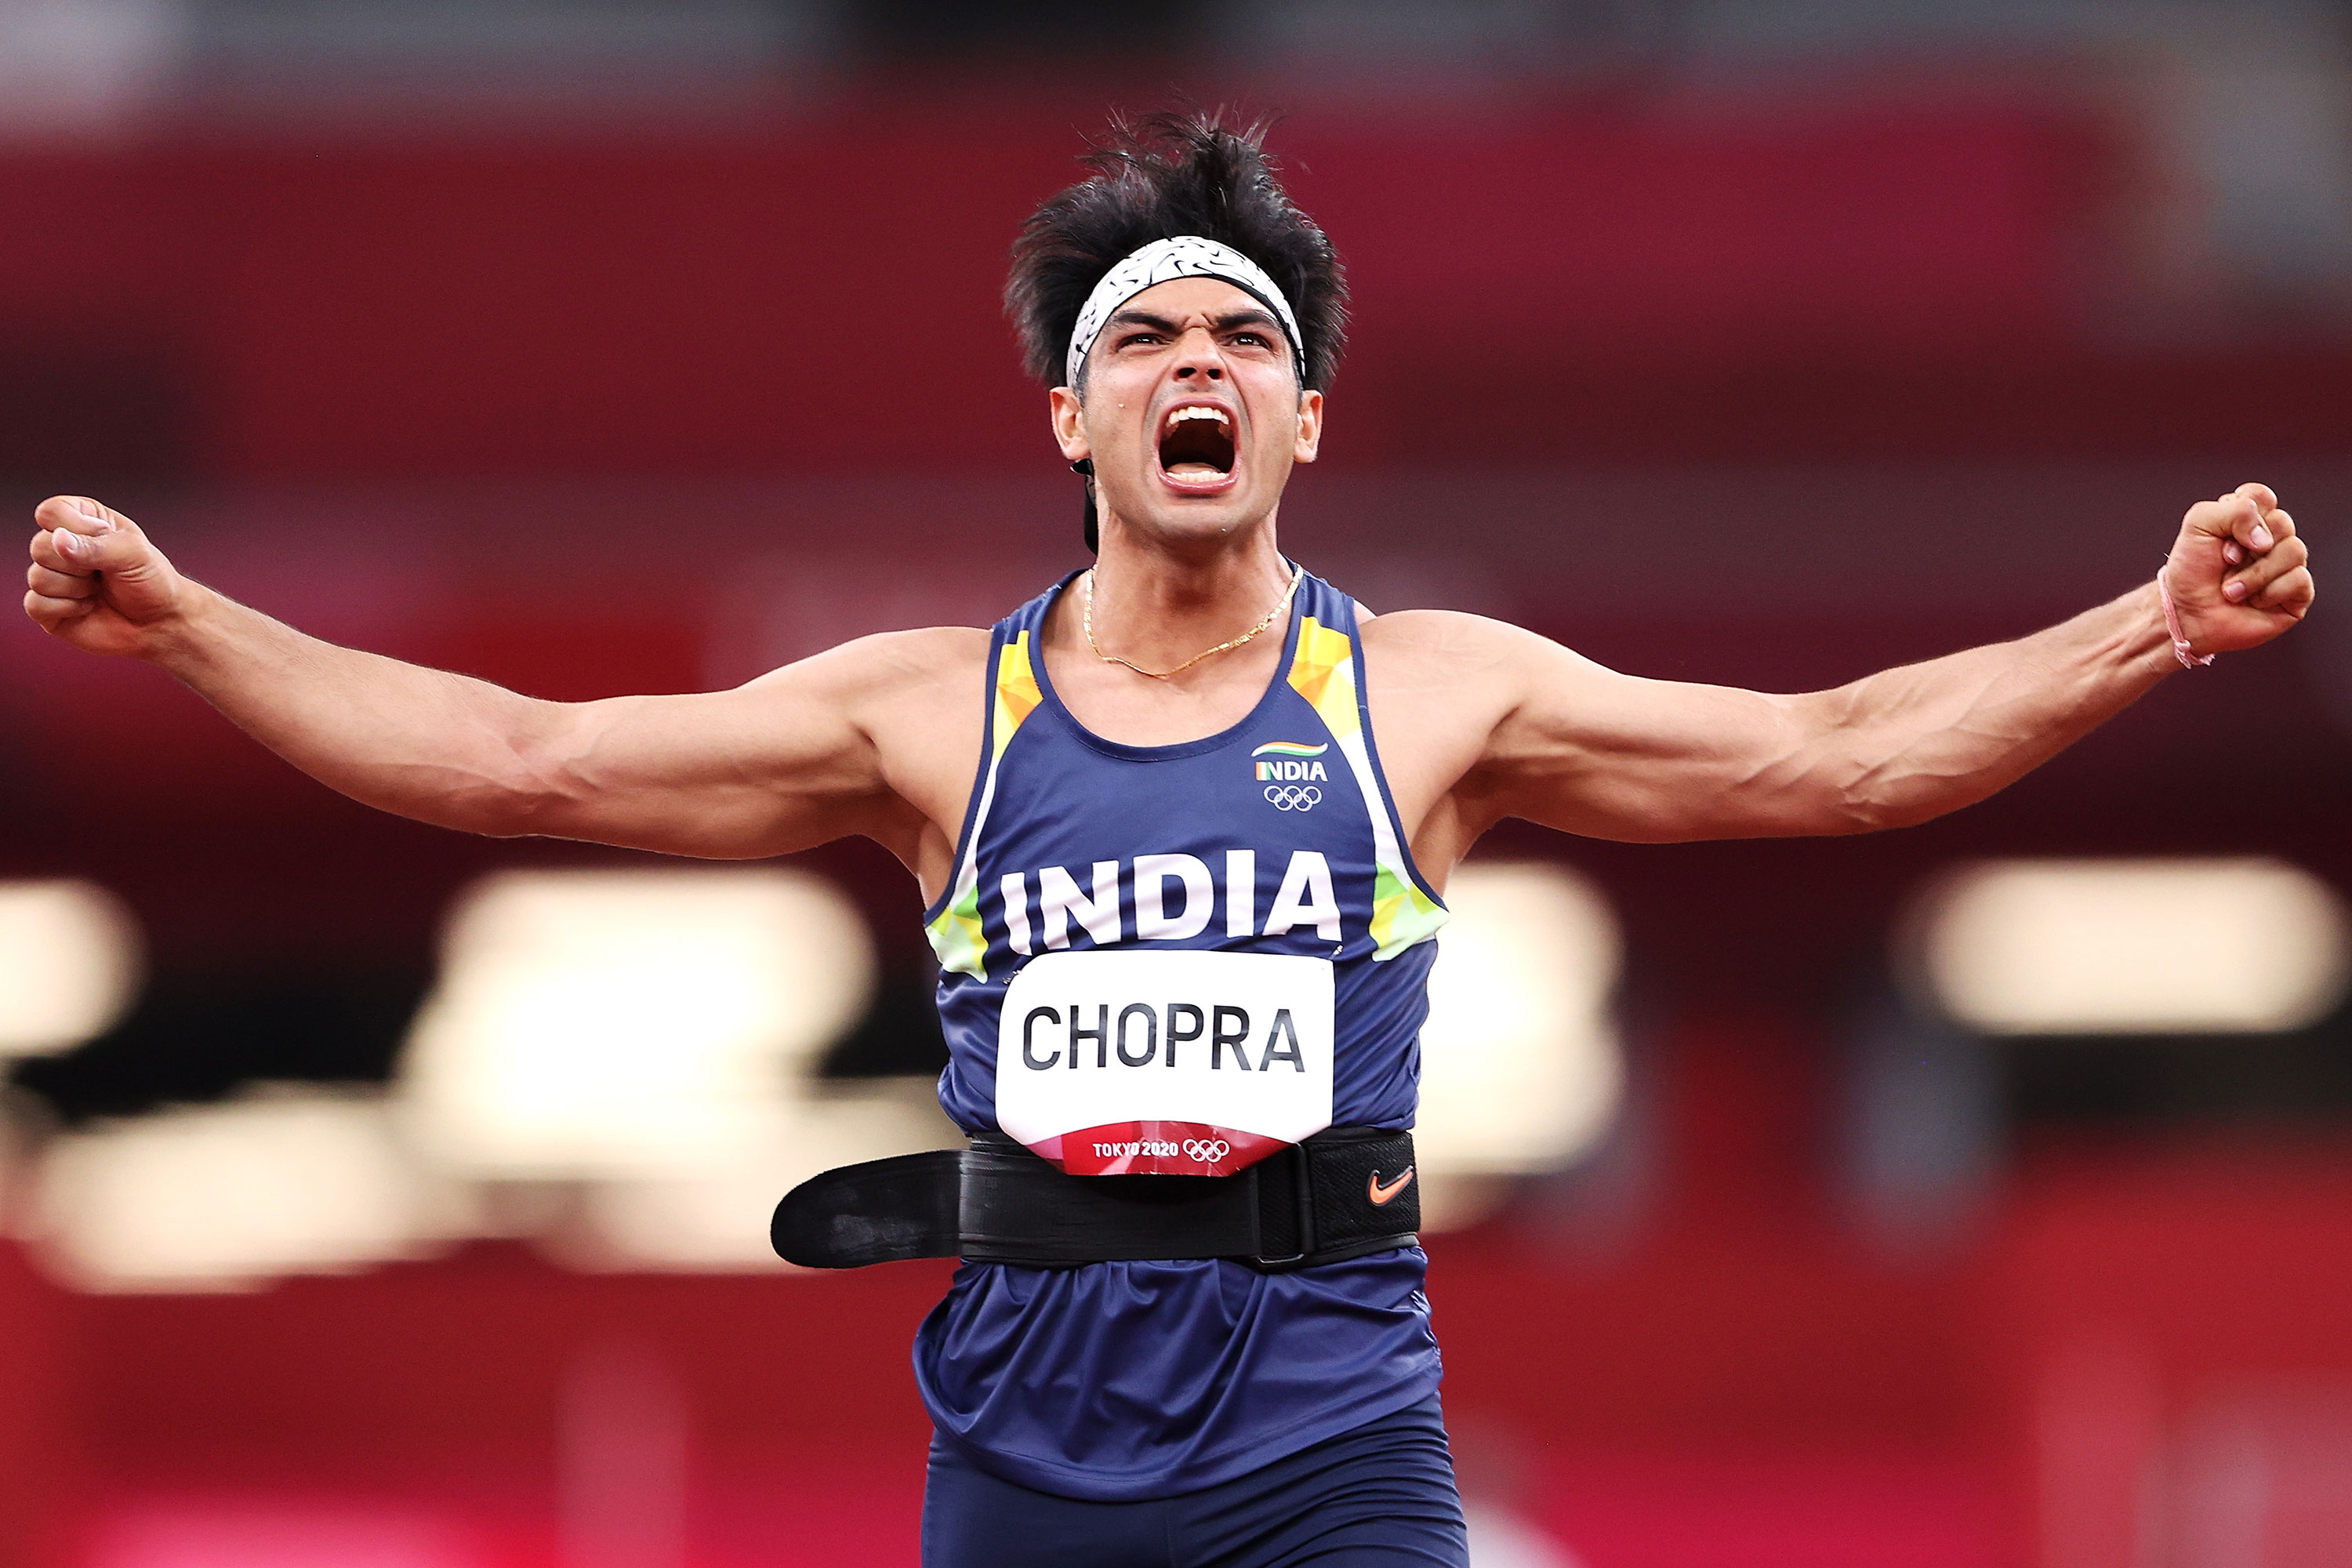 Neeraj Chopra of India reacts while competing in the javelin throw final on Saturday.